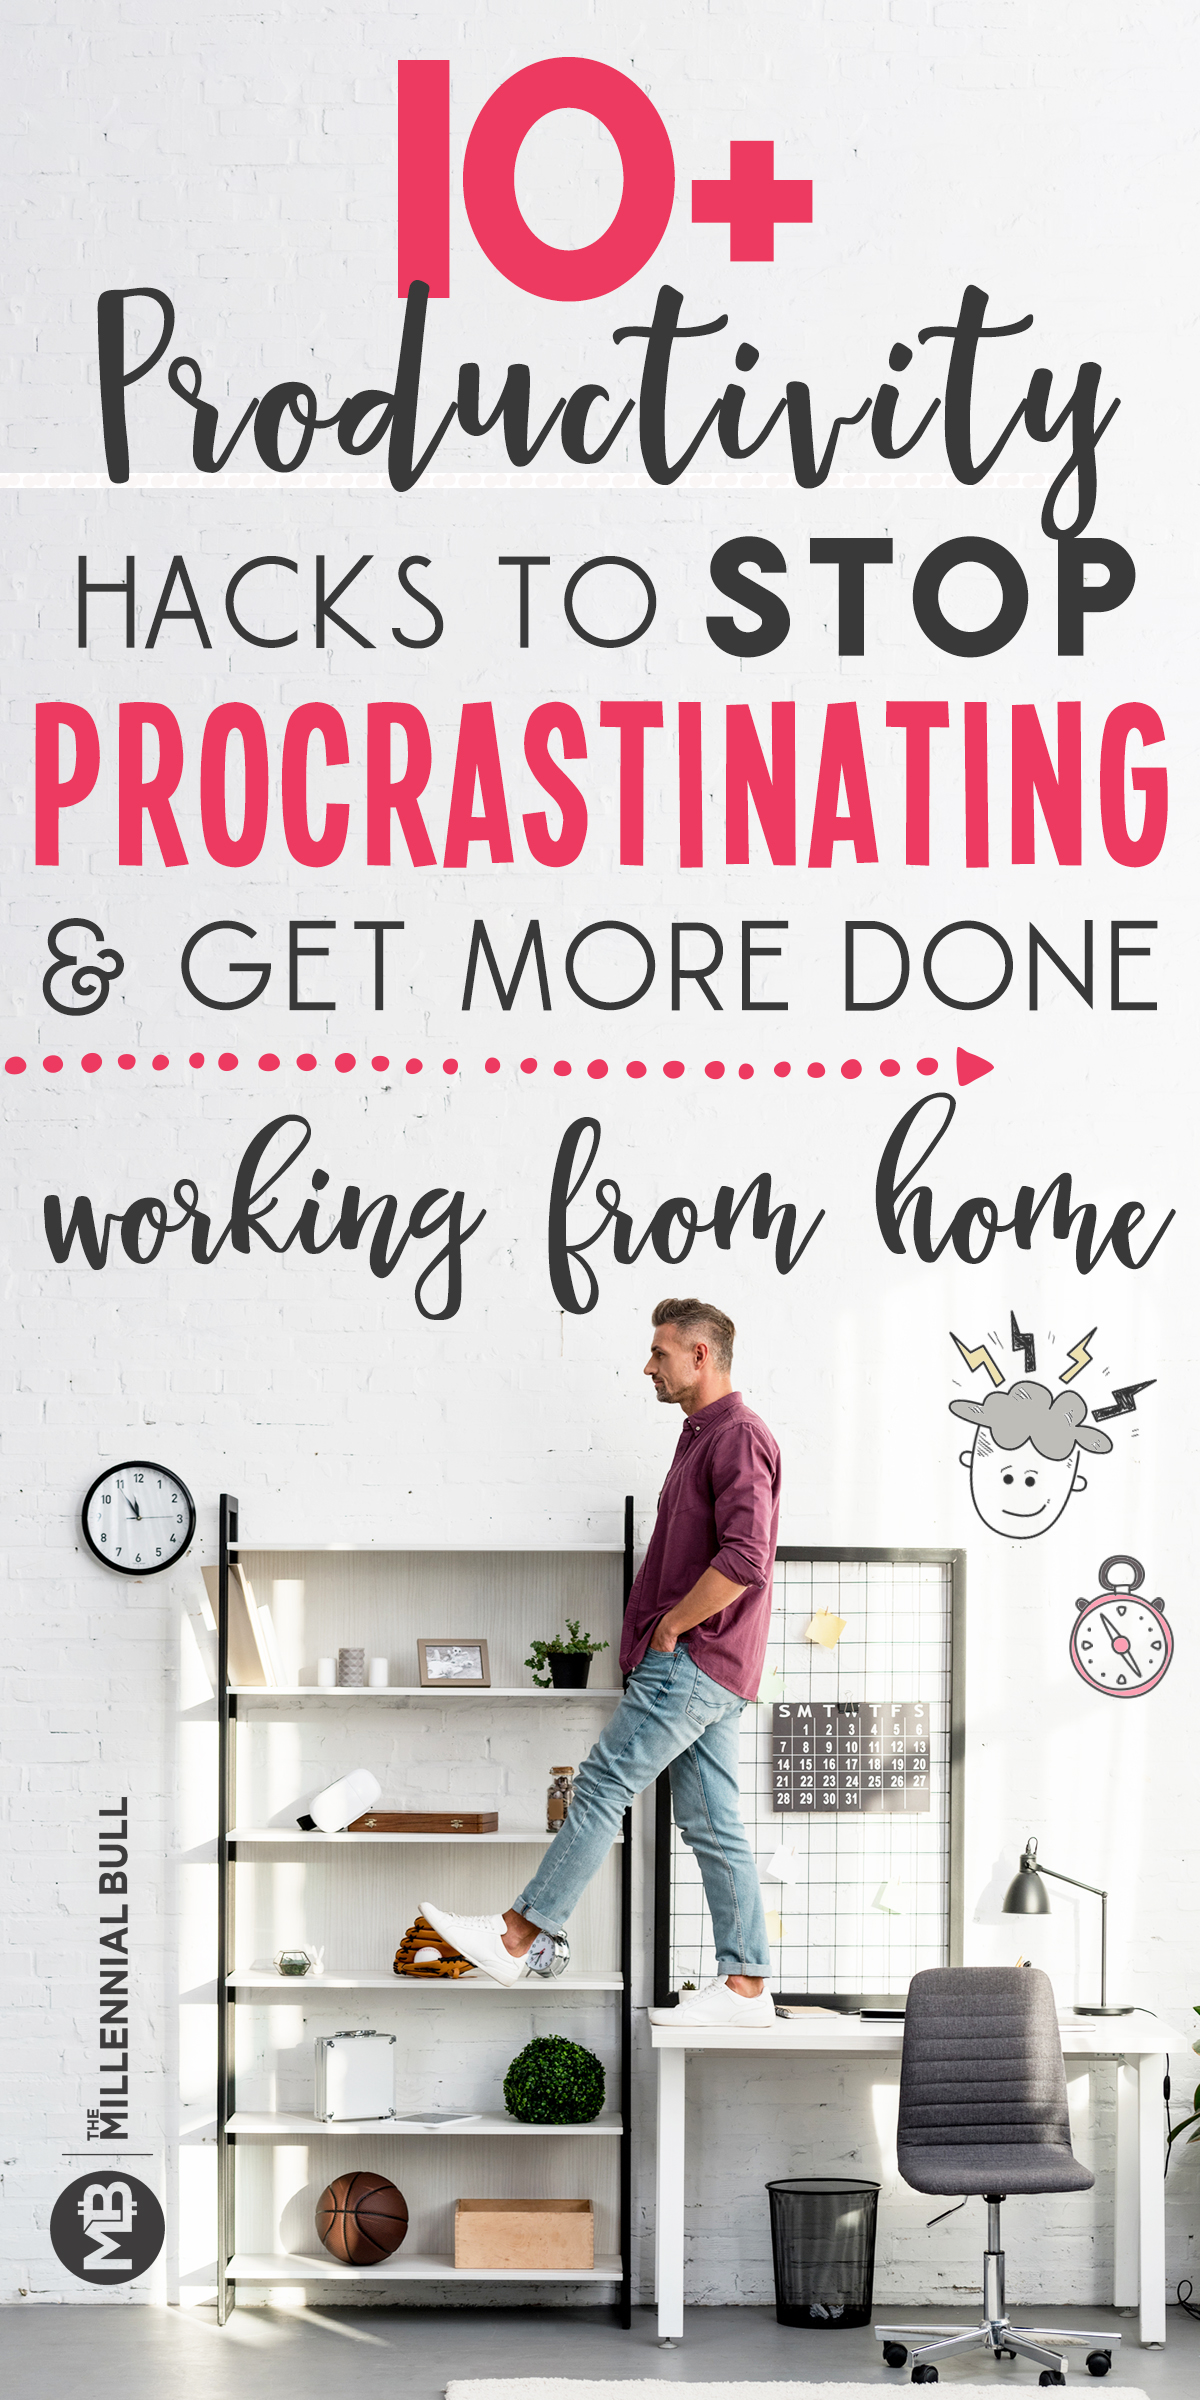 10+ productivity hacks to stop procrastinating and get more done working from home. Learn how to manage your time and be more productive as a freelancer, entrepreneur or stay at home mom with these simple hacks! #productivity #timemanagement #wah #workfromhome